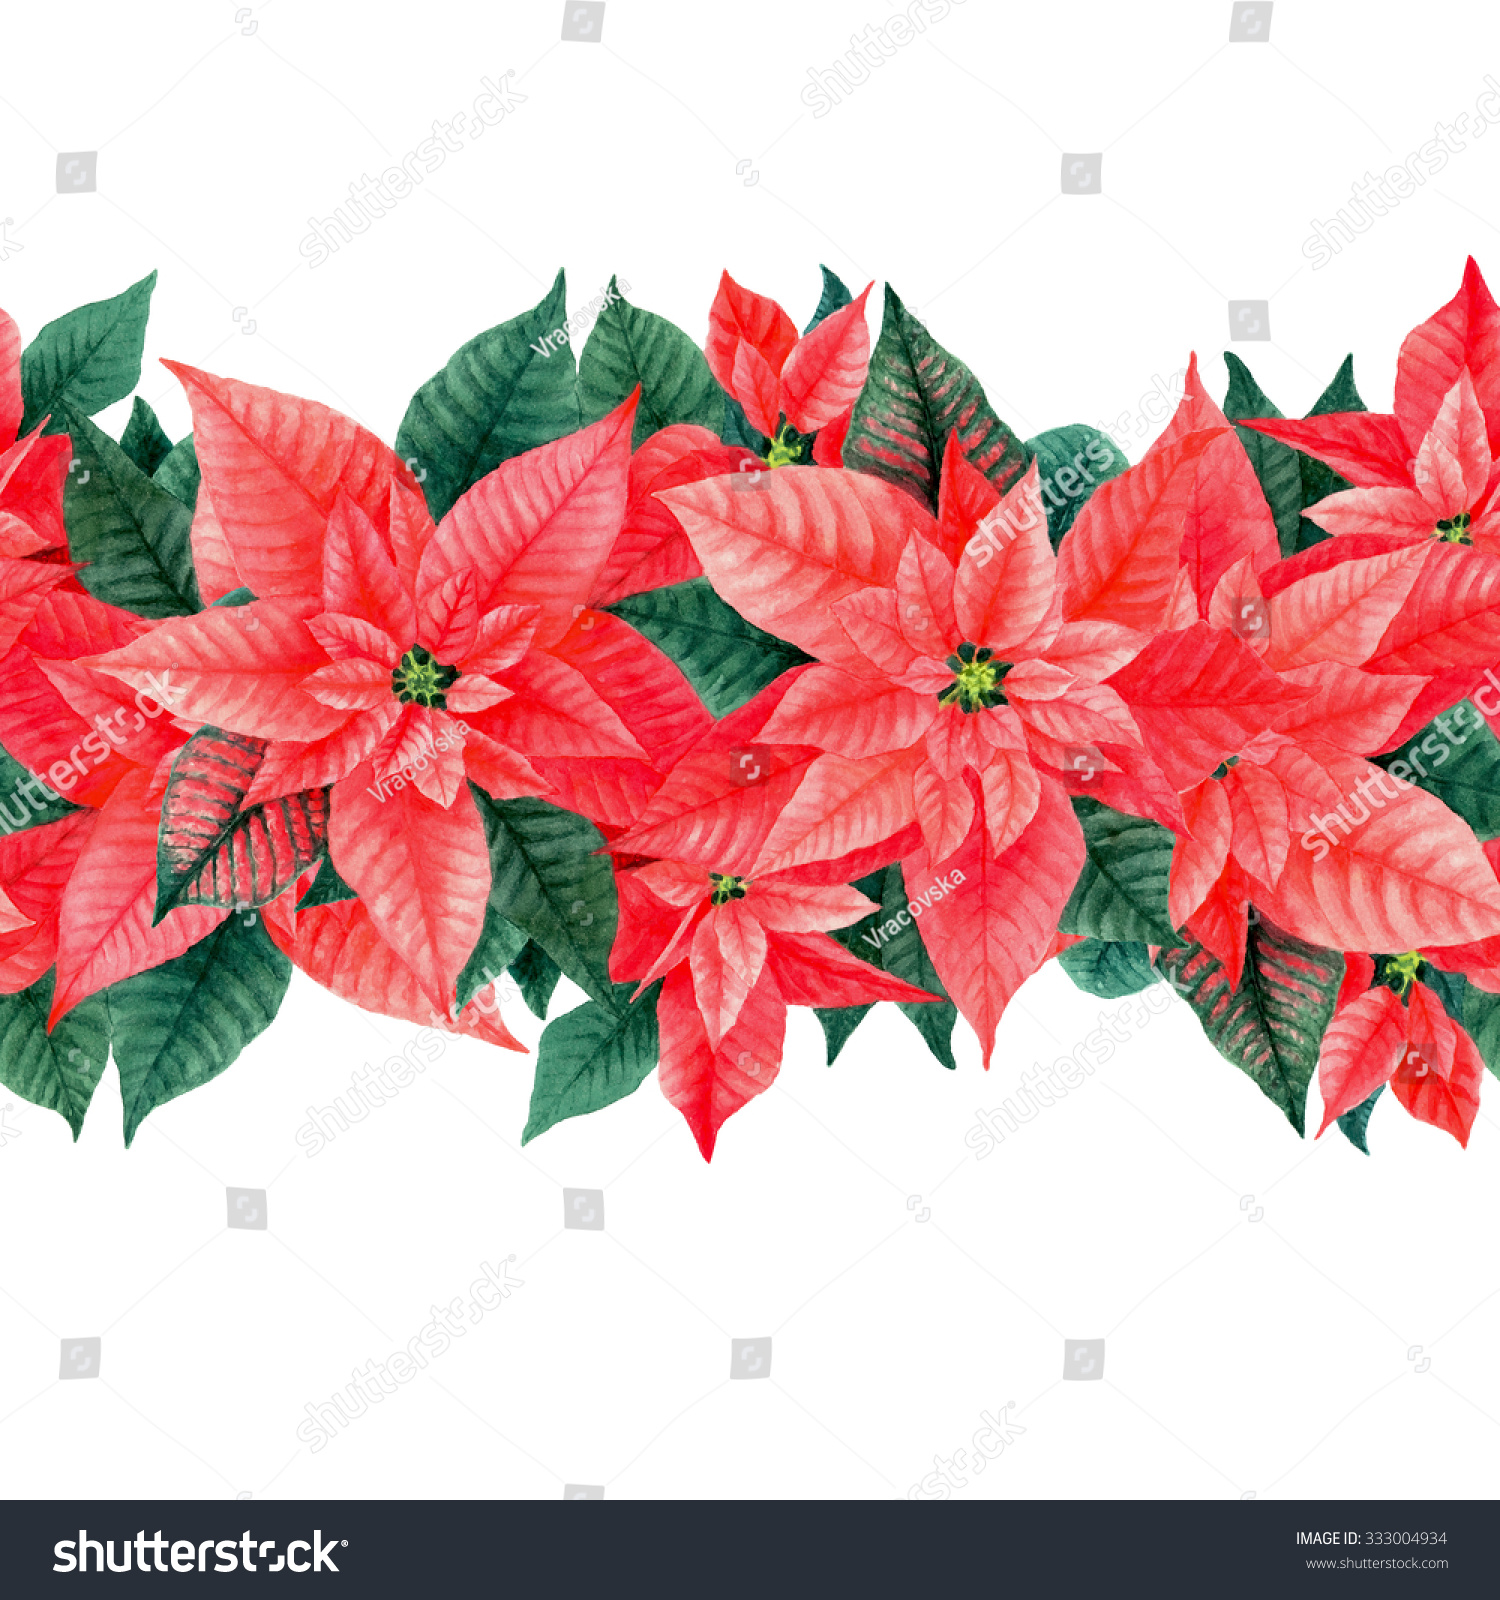 seamless watercolor poinsettia hand painted floral border isolated on white background